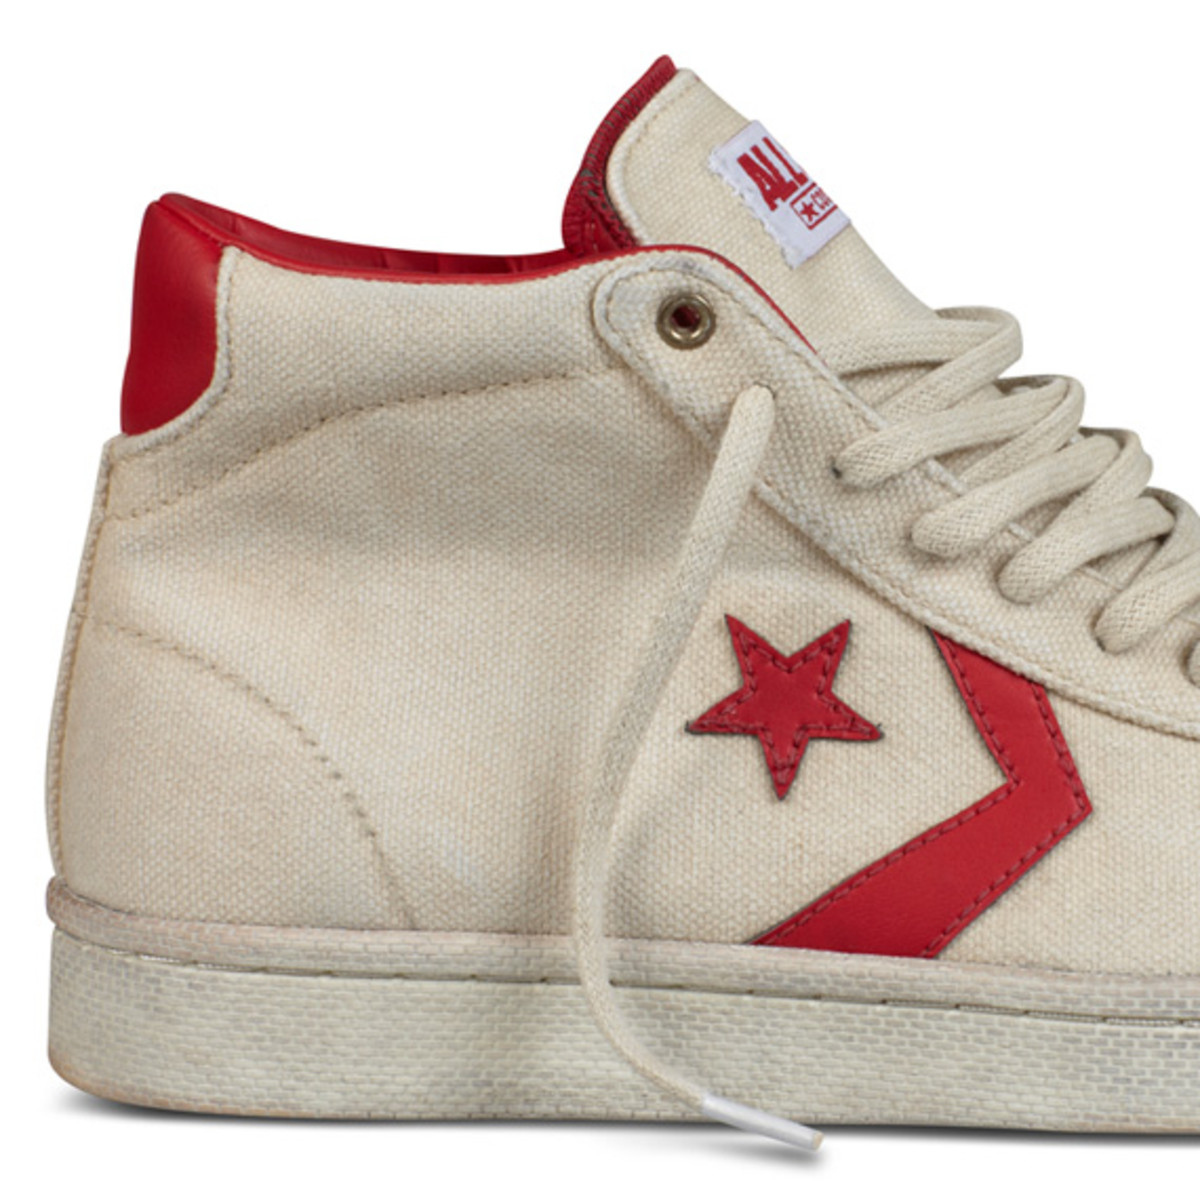 clot-converse-first-string-pro-leather-hi-05